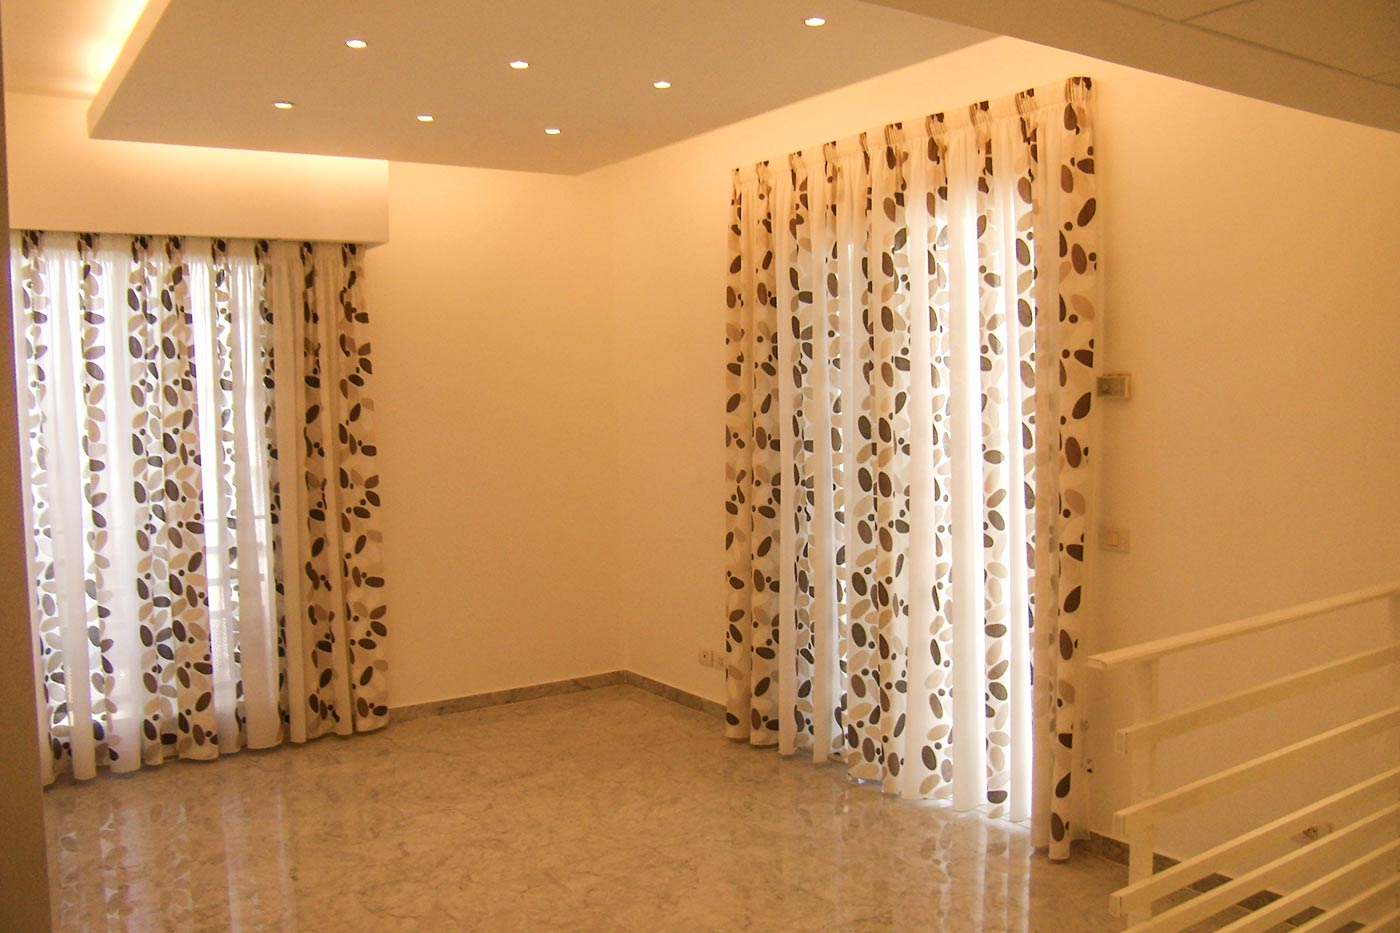 Jaber Residence - Doors with Curtains